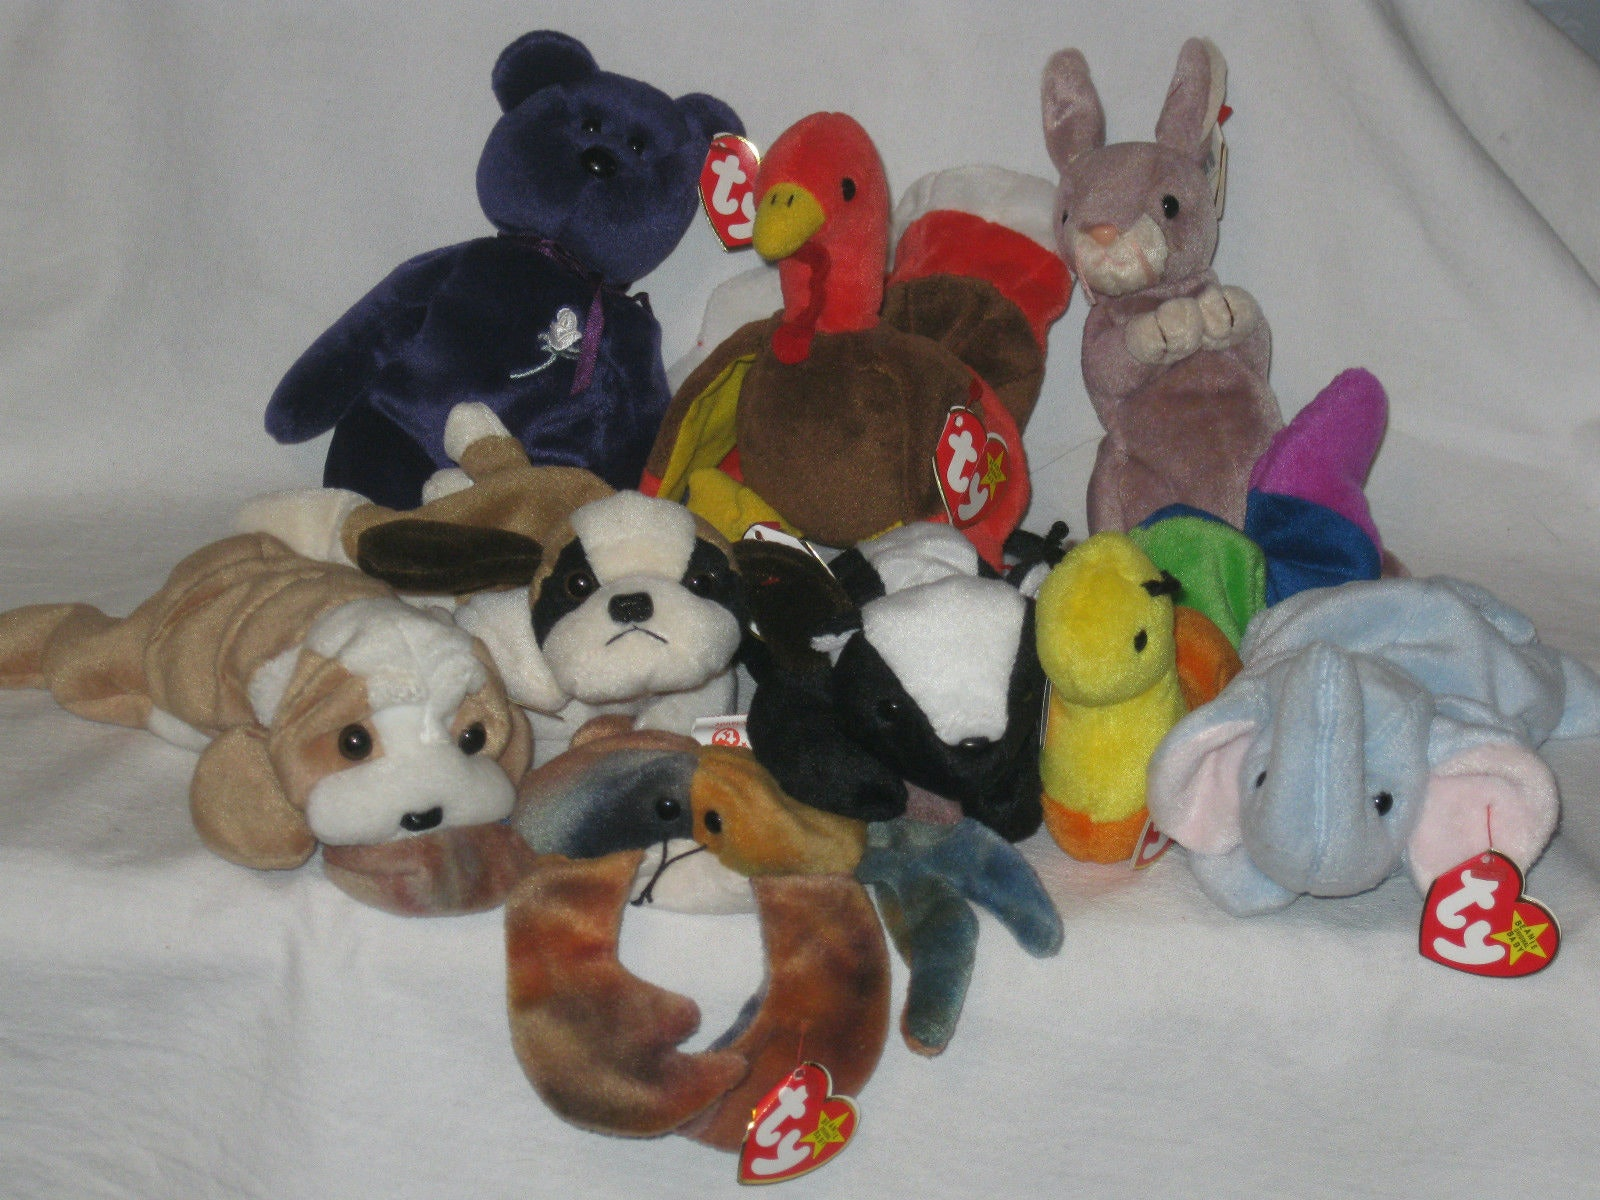 The Most Valuable Beanie Babies Could Be Hiding in Your Closet 3e7a77d399c